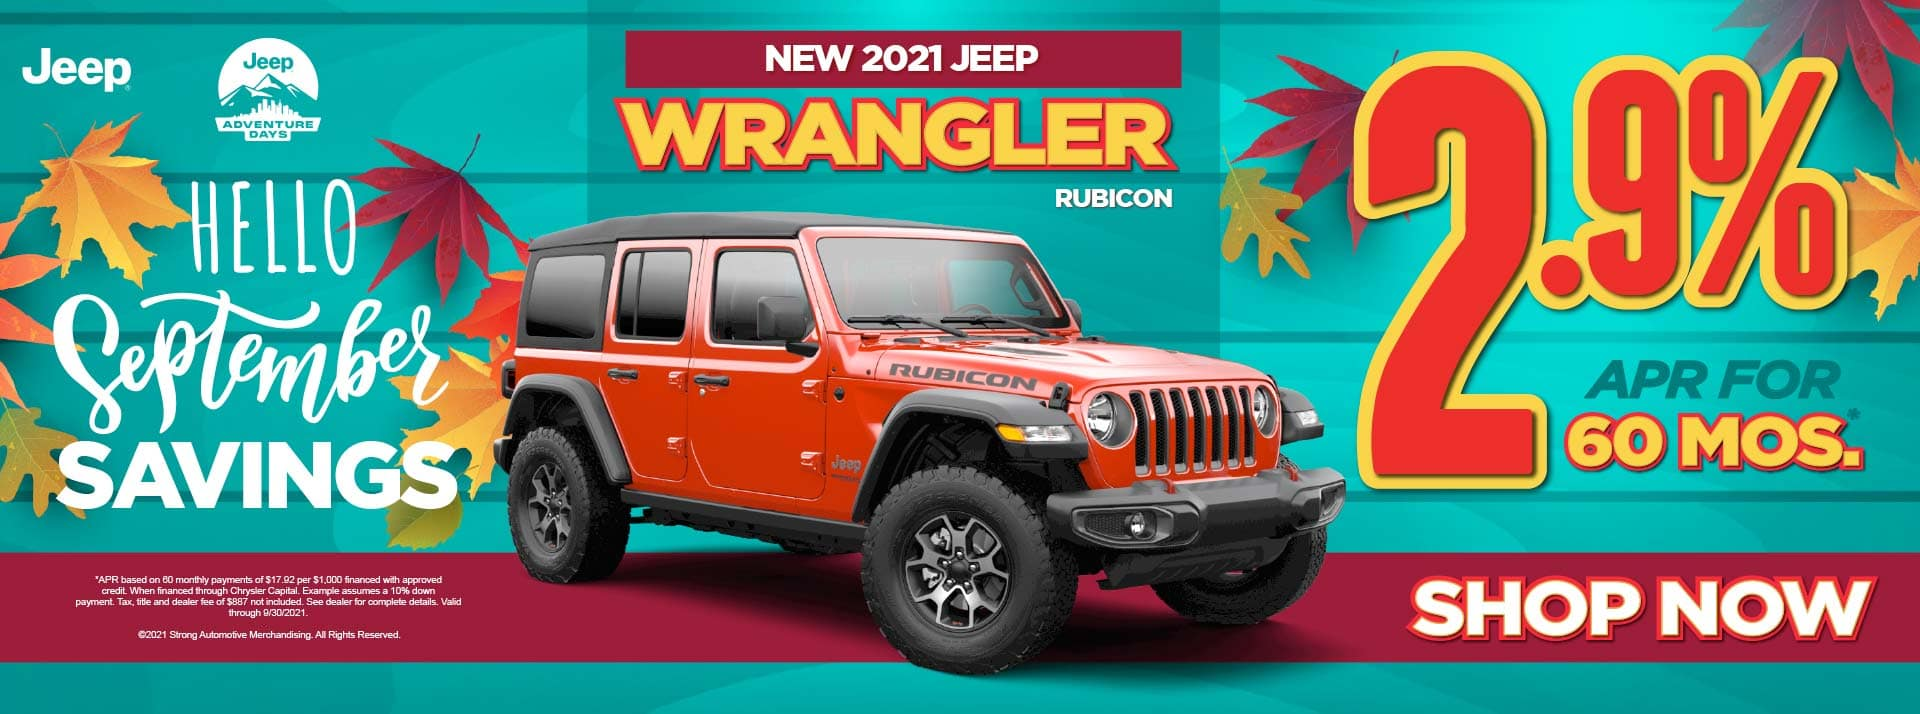 New 2021 Jeep Wrangler Rubicon – 2.9% for 60 months ACT NOW